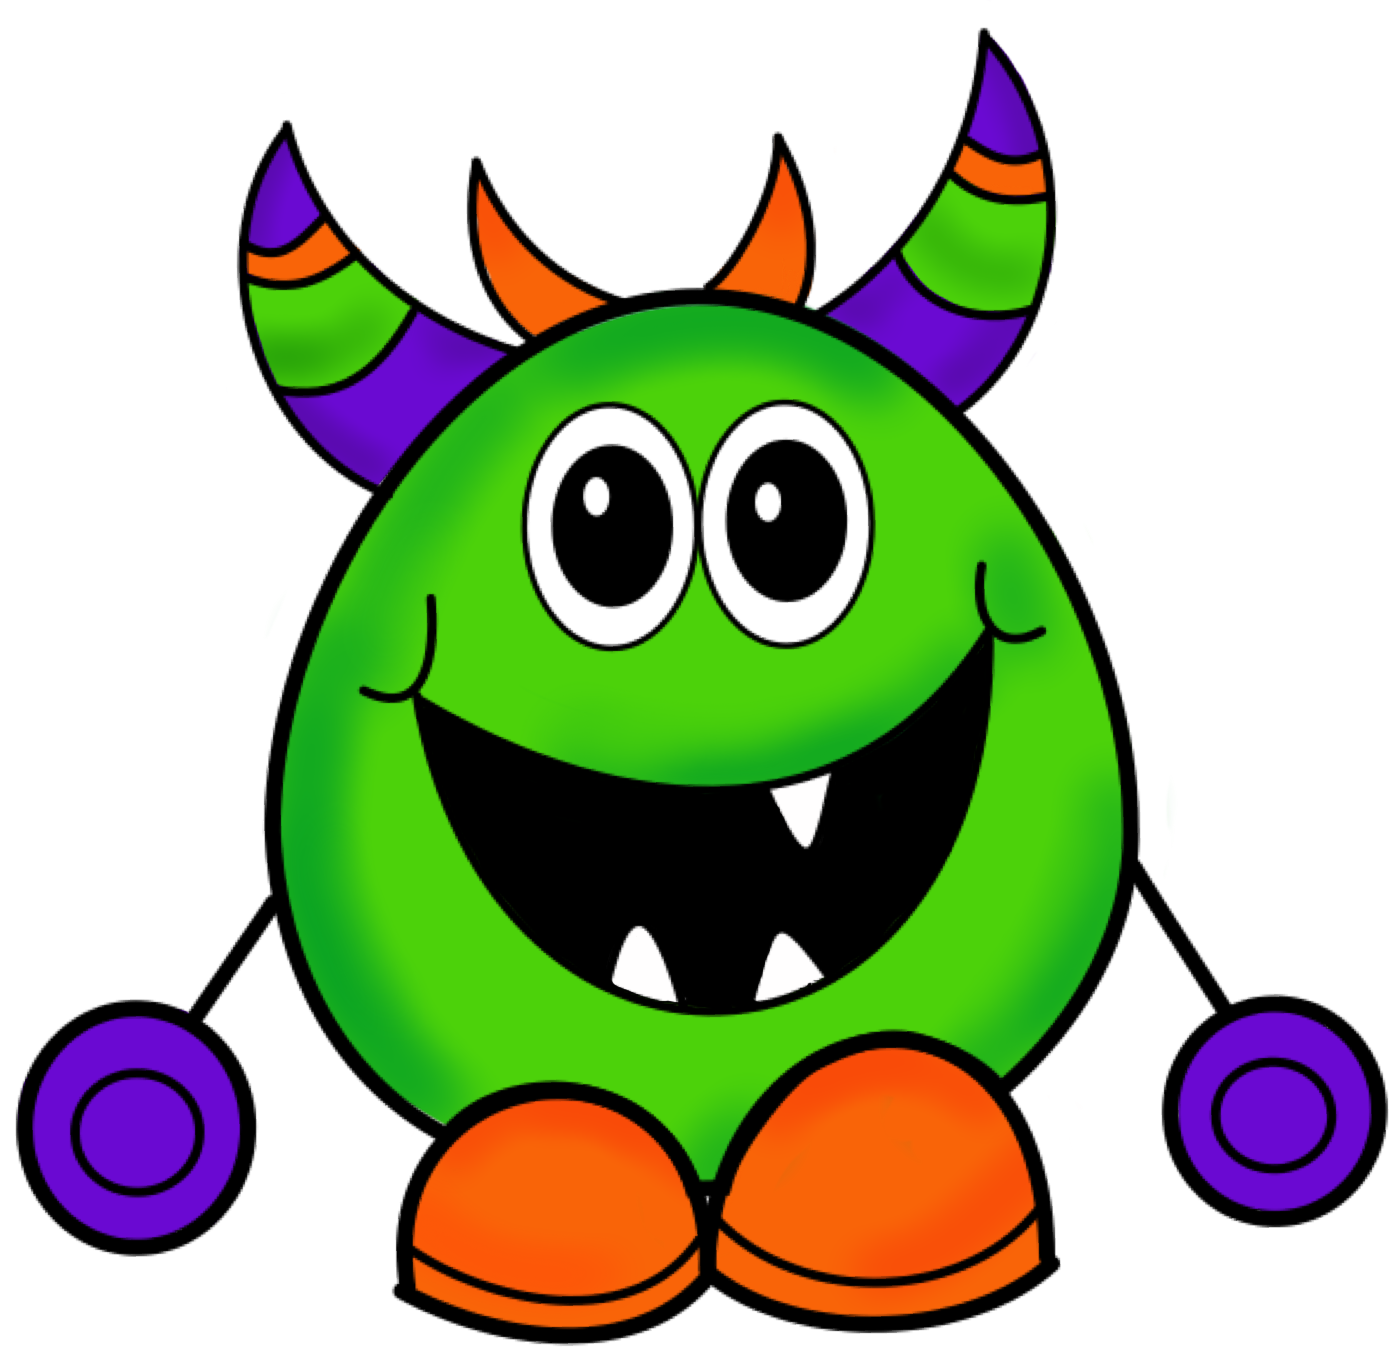 Smiling clipart monster. To school paper panda